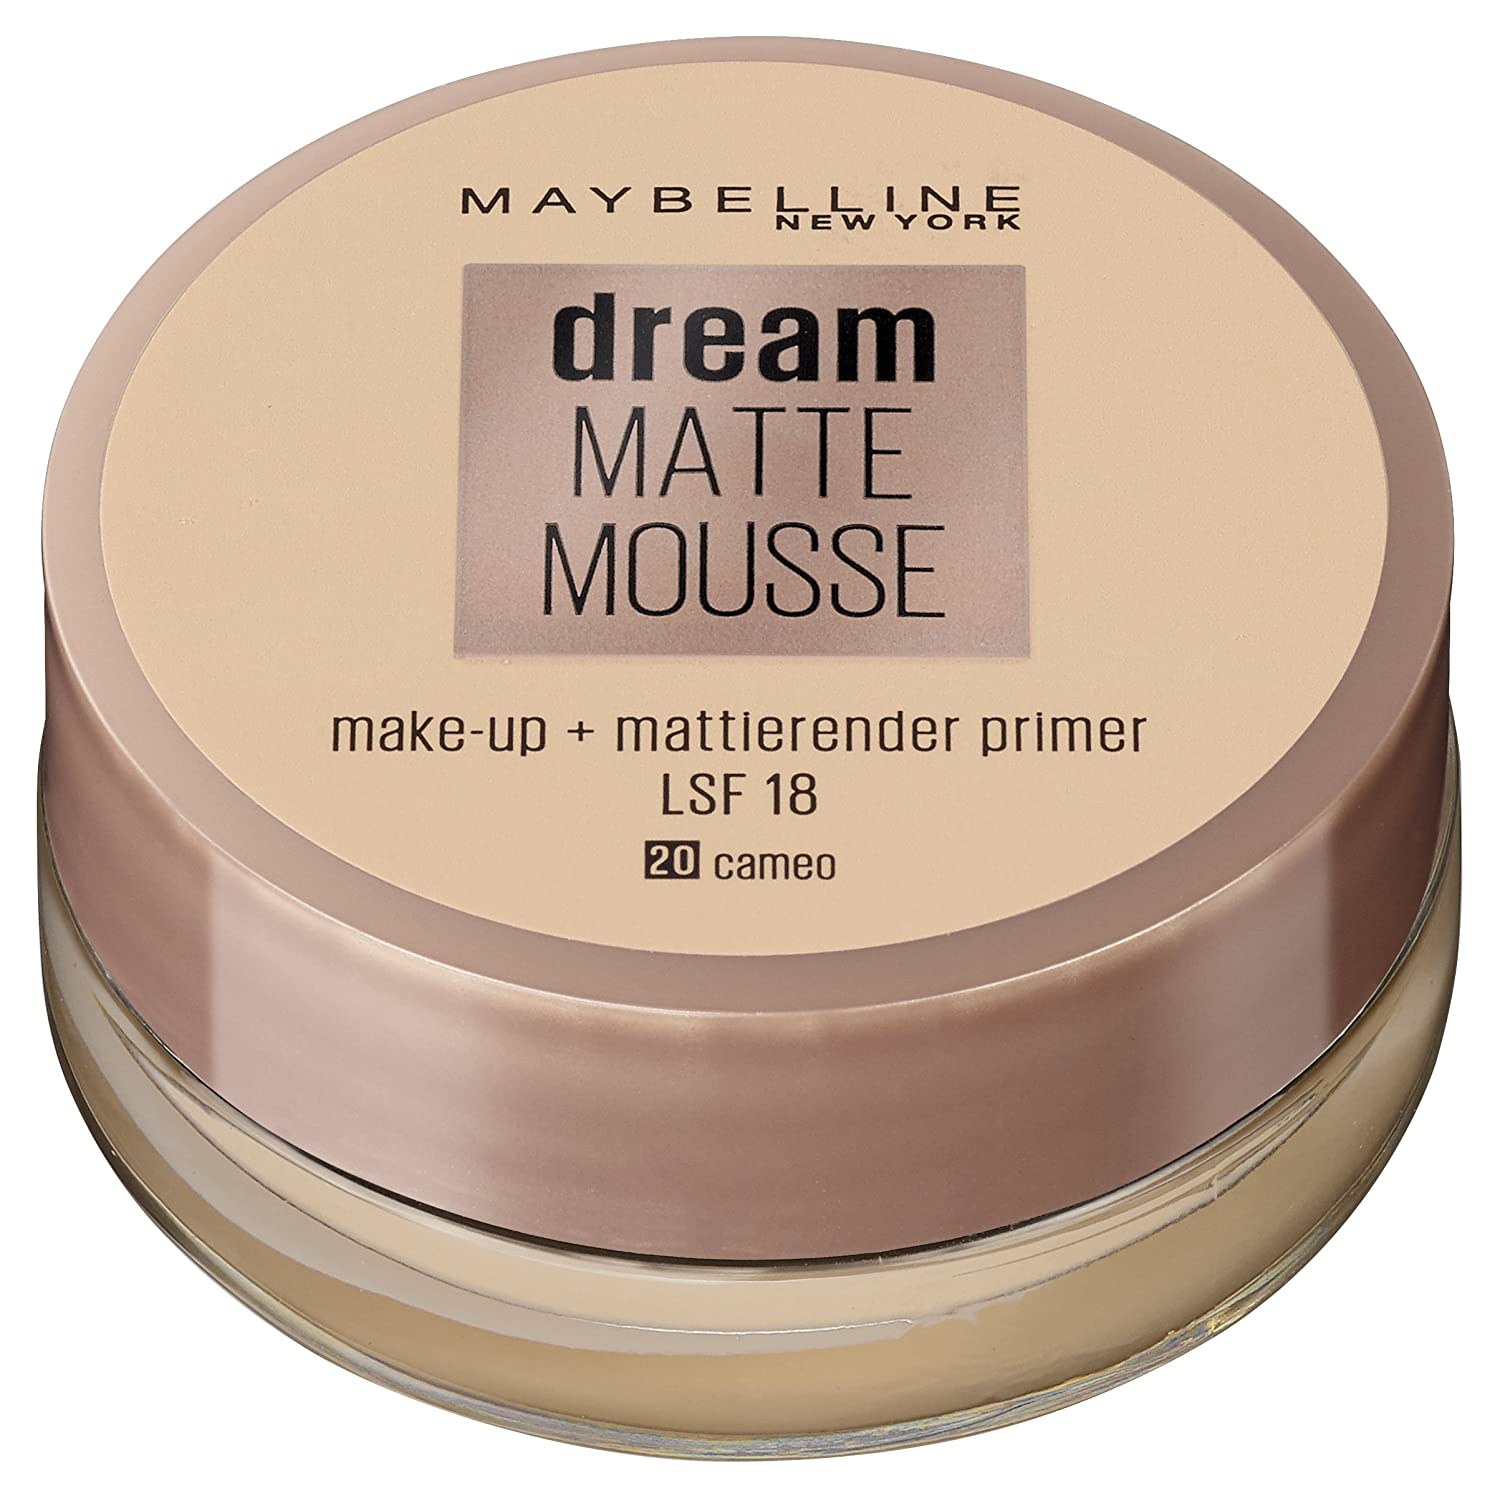 Maybelline Dream Matte Mousse Make-up Nr. 16 Vanilla, mattierendes Make-up mit luftgeschlagener Mousse-Textur, für ein luftig-leichtes Tragegefühl und wunderbar zarte Haut, 18 ml Maybelline New York B2417112